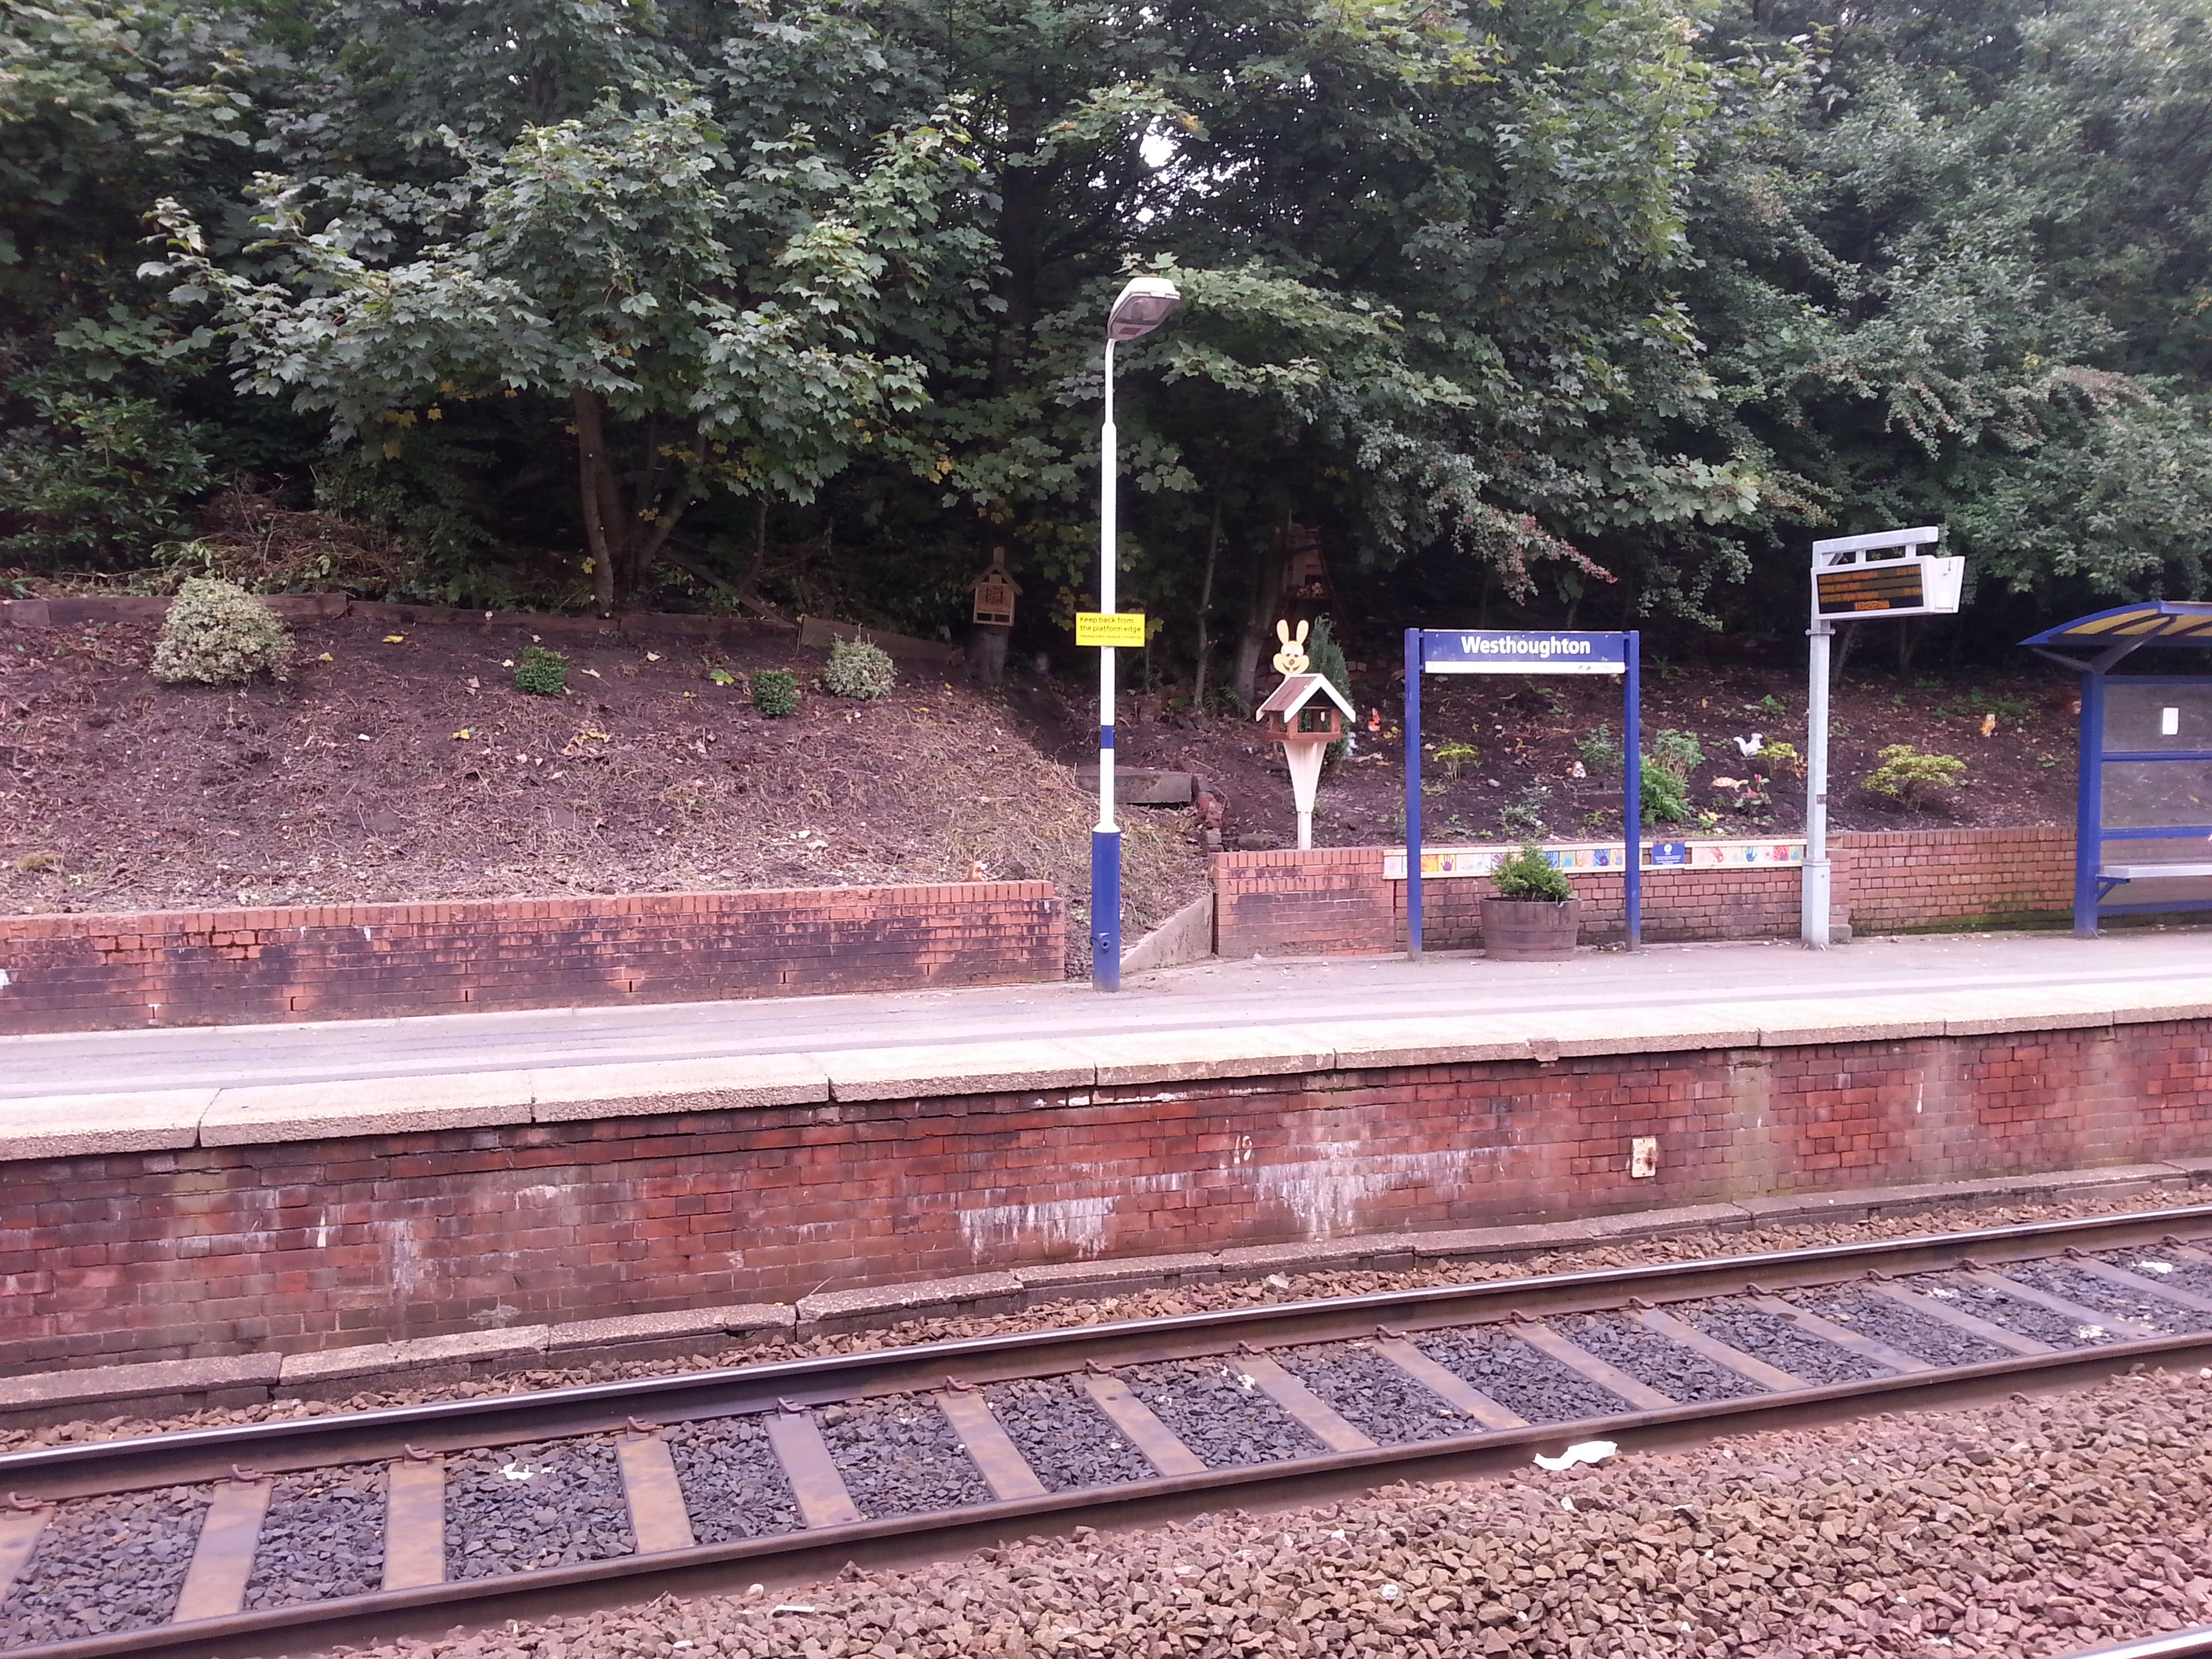 Westhoughton railway station